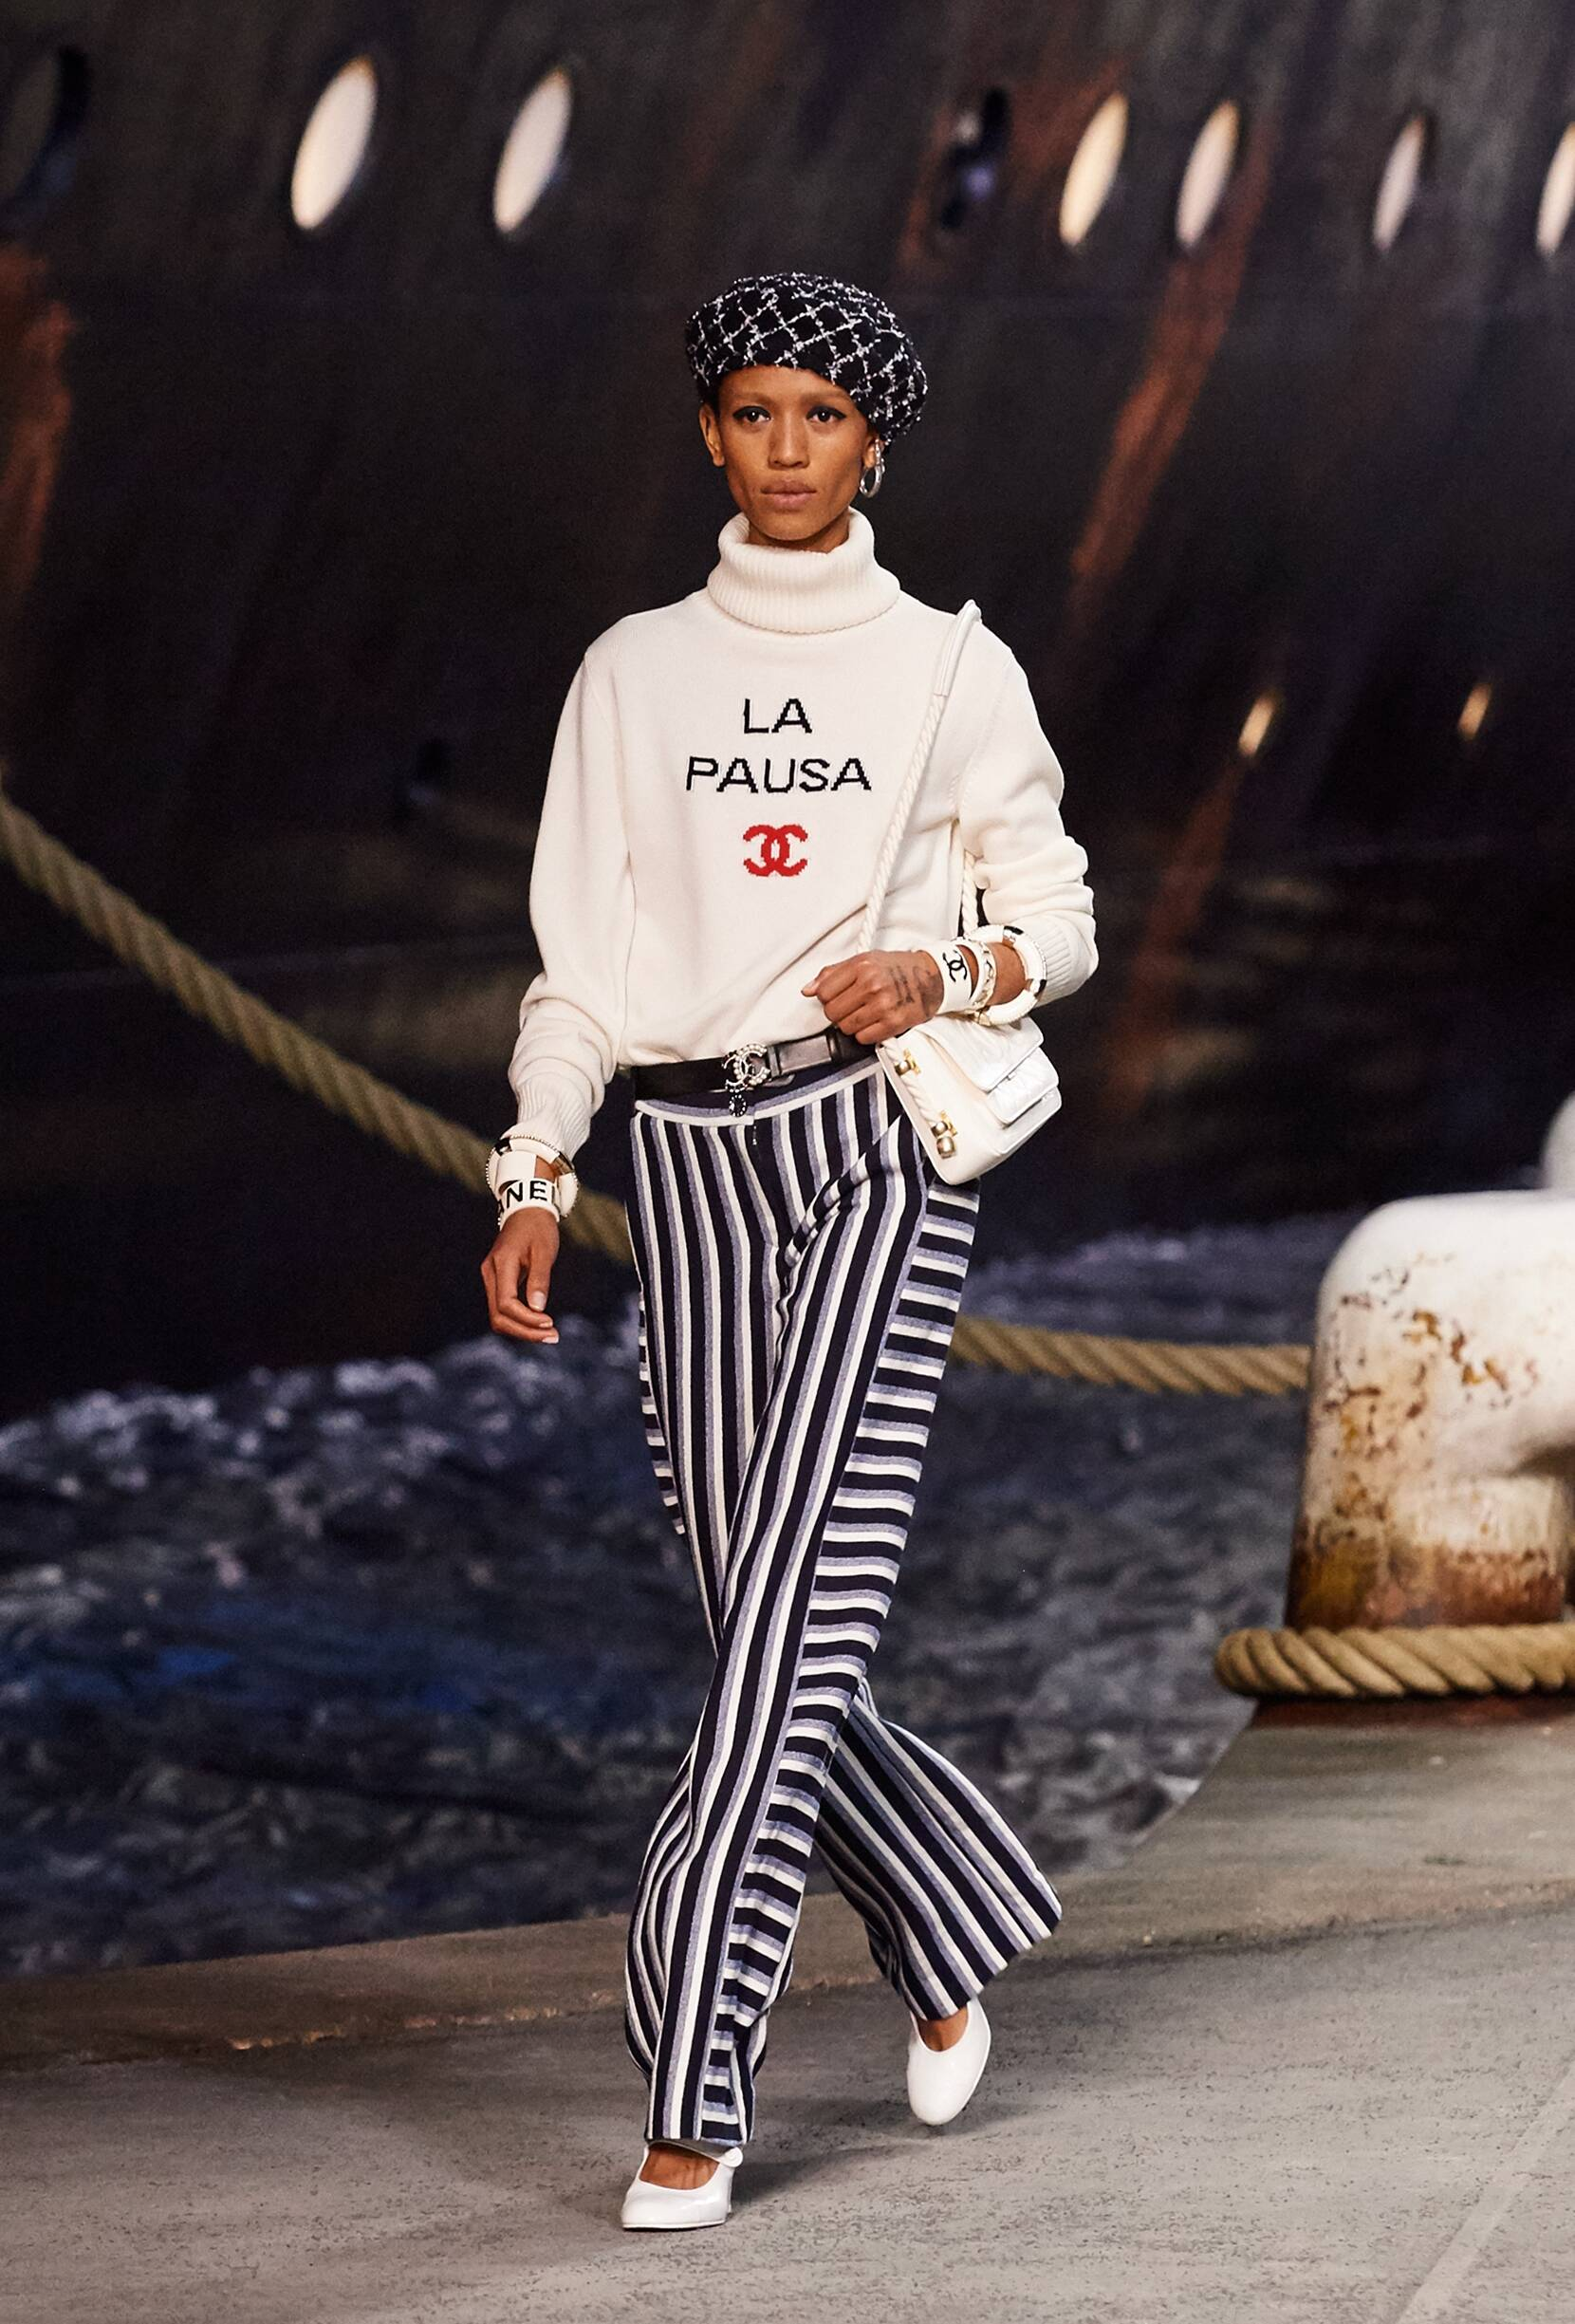 Chanel Cruise Collection 2018-19 Look 3 Paris